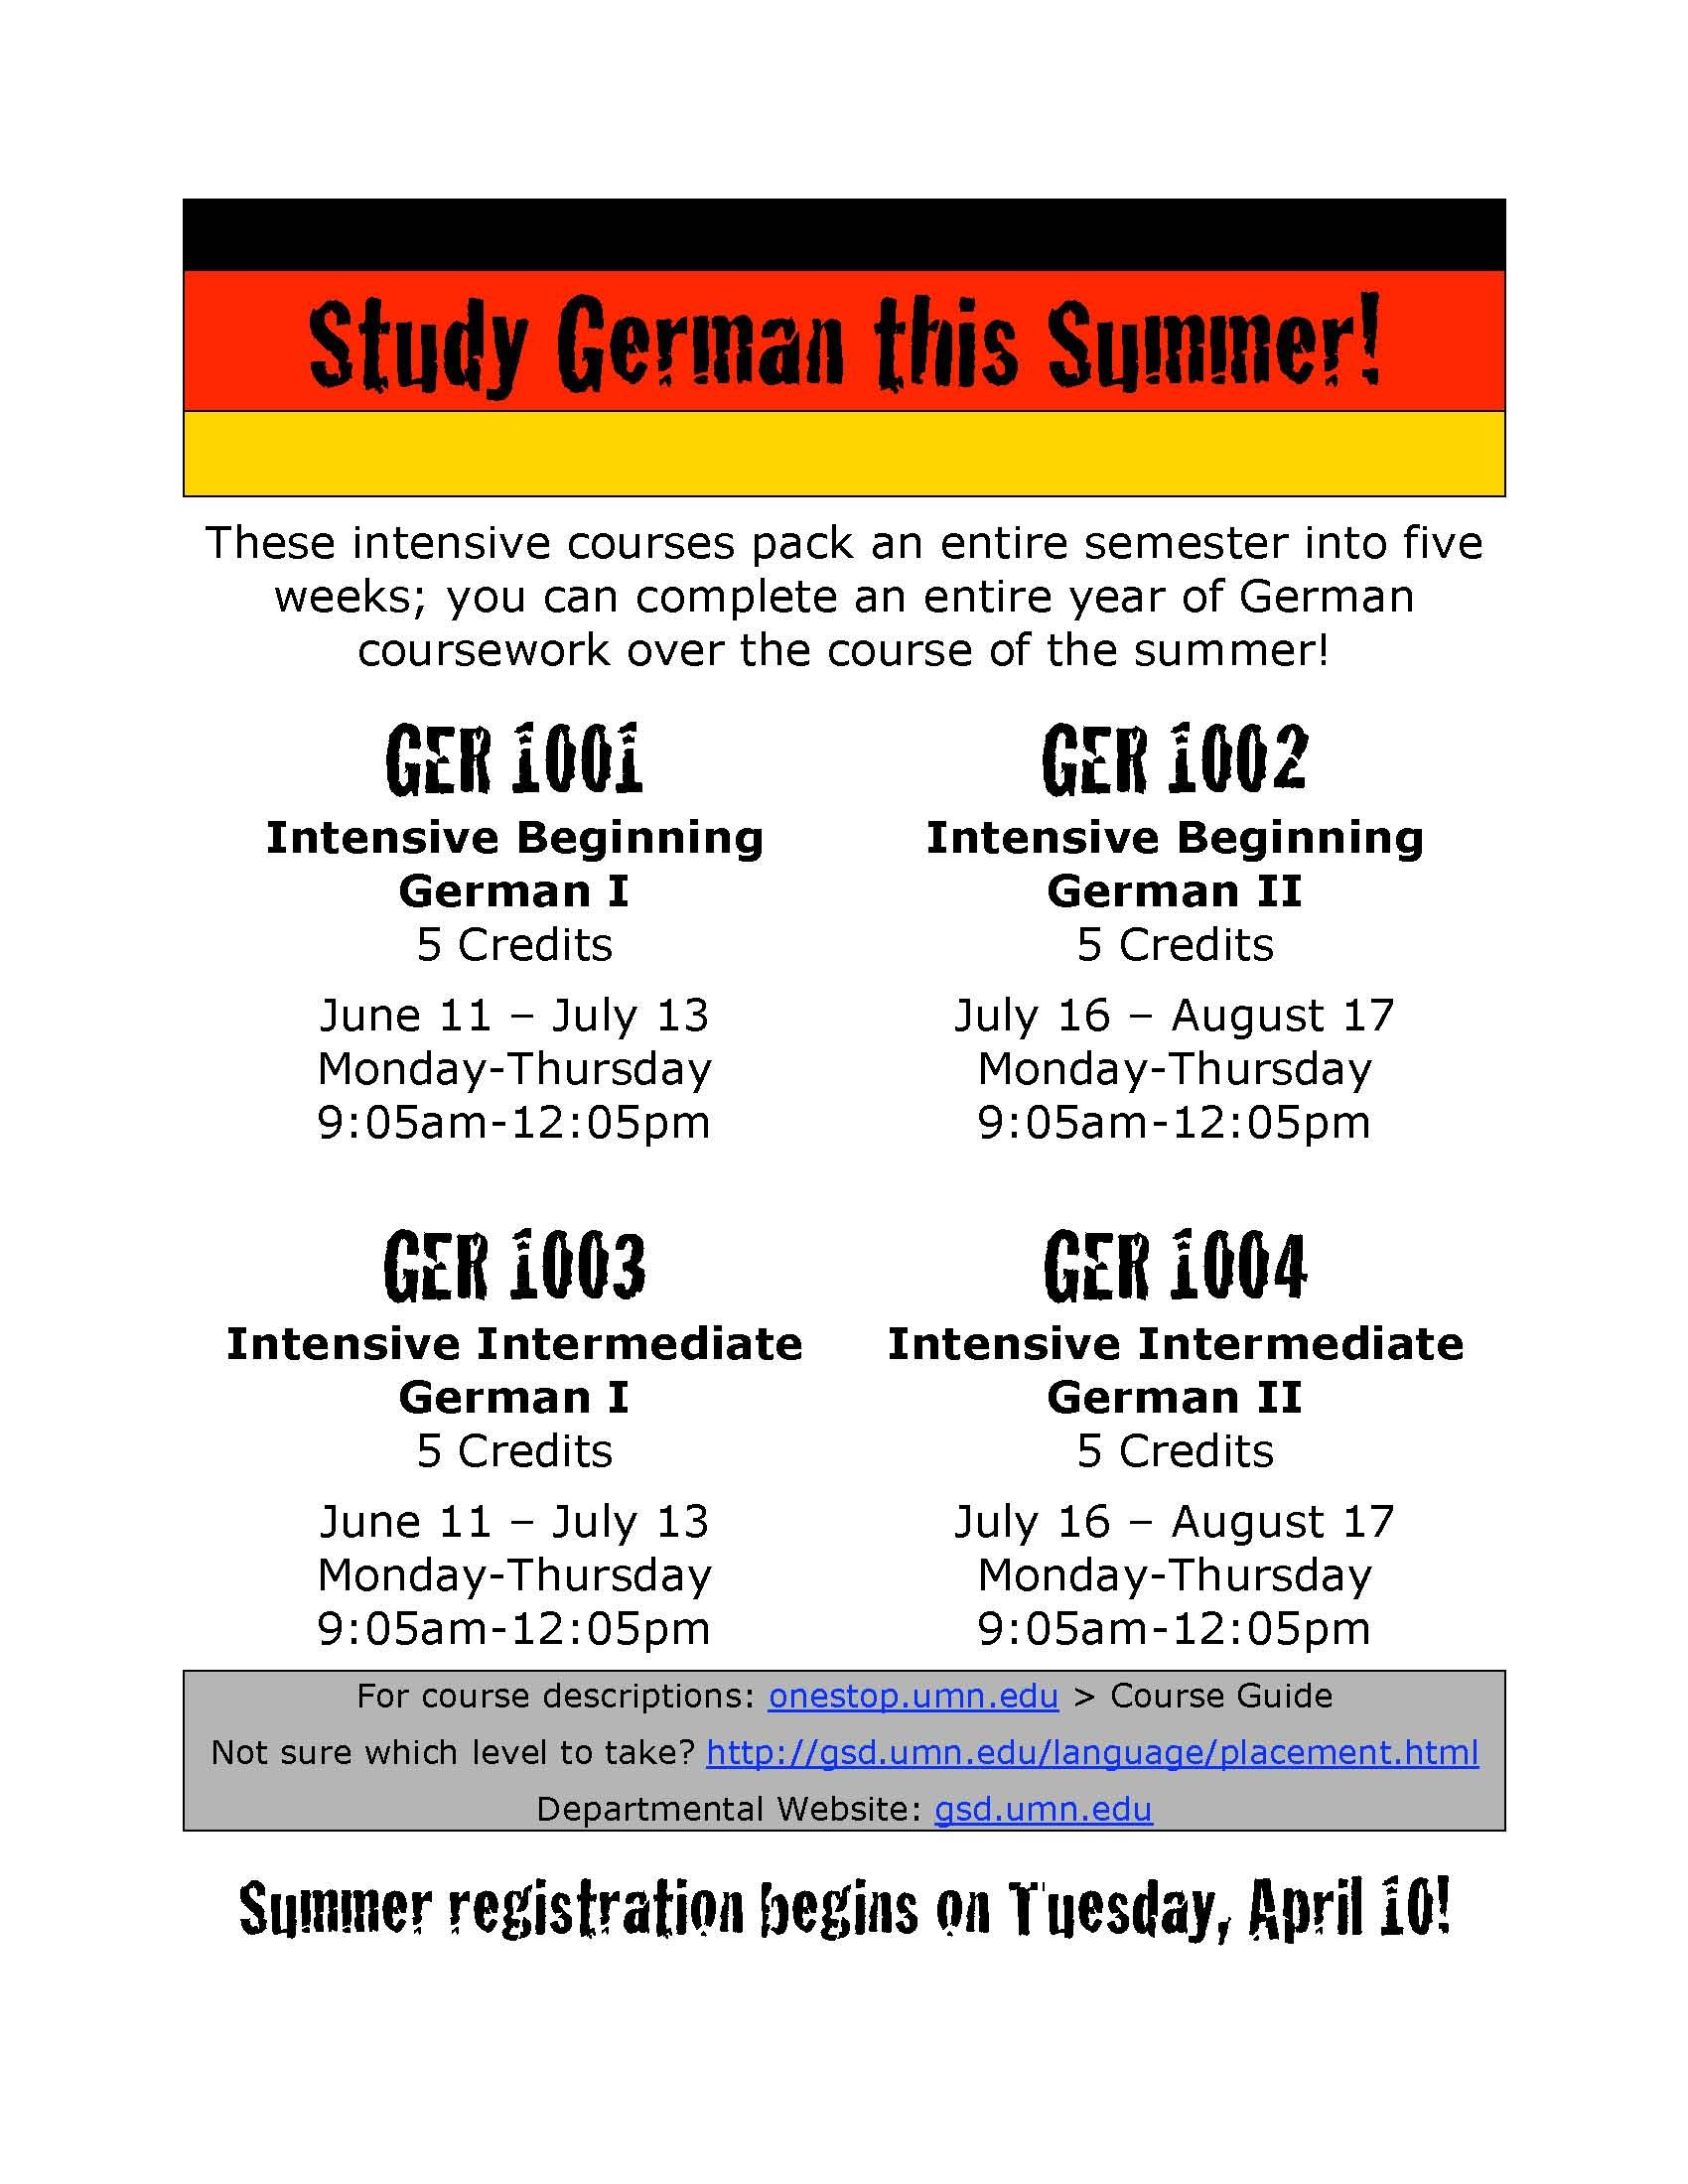 We offer four intensive German language courses in the